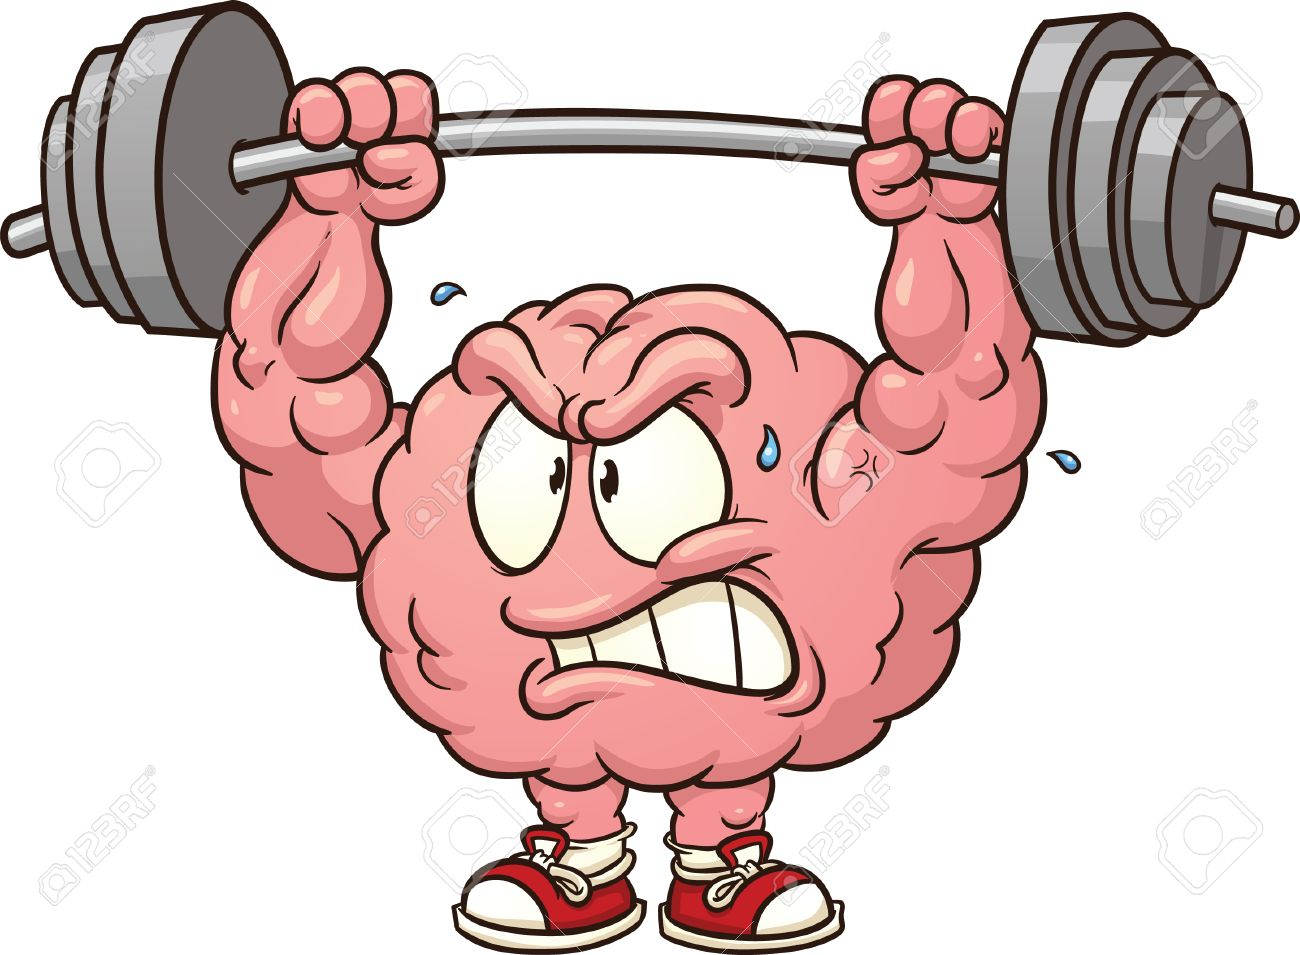 Image result for clipart weightlifter